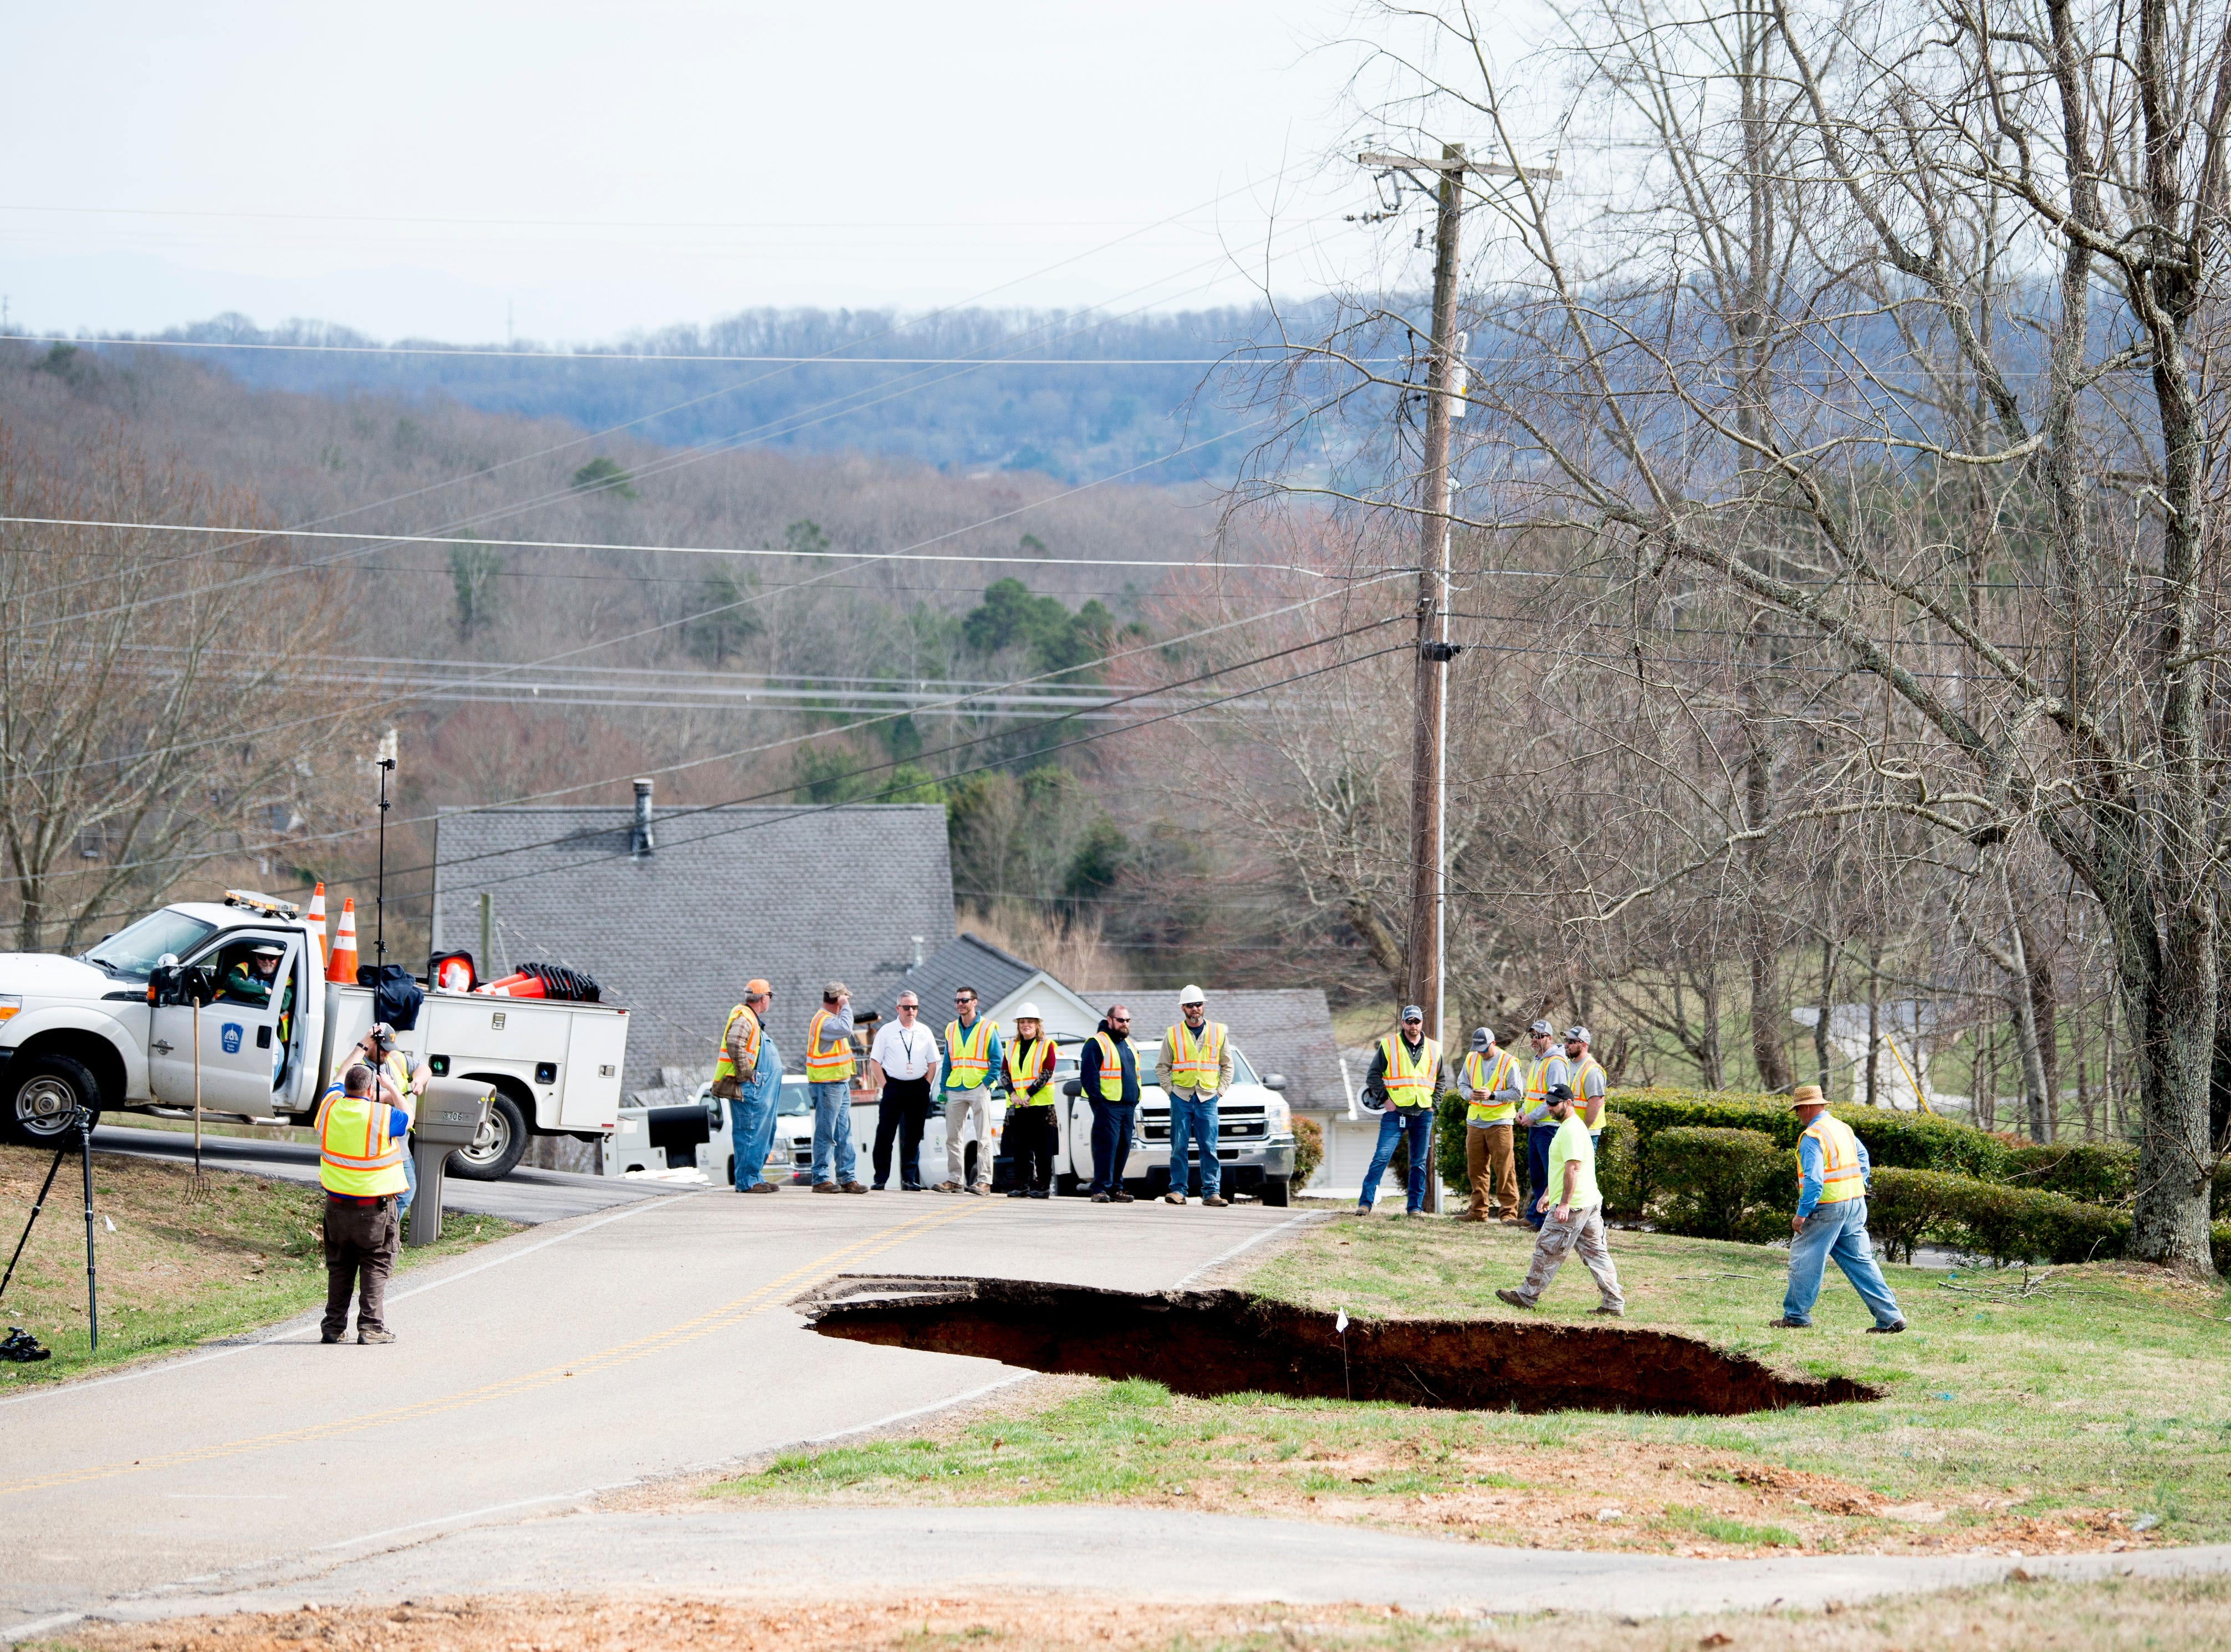 Workers from Hallsdale-Powell Utility District at the scene of a large sinkhole on Greenwell Road in Powell, Tennessee on Tuesday, February 26, 2019. The sinkhole is estimated to be around 20 feet deep.